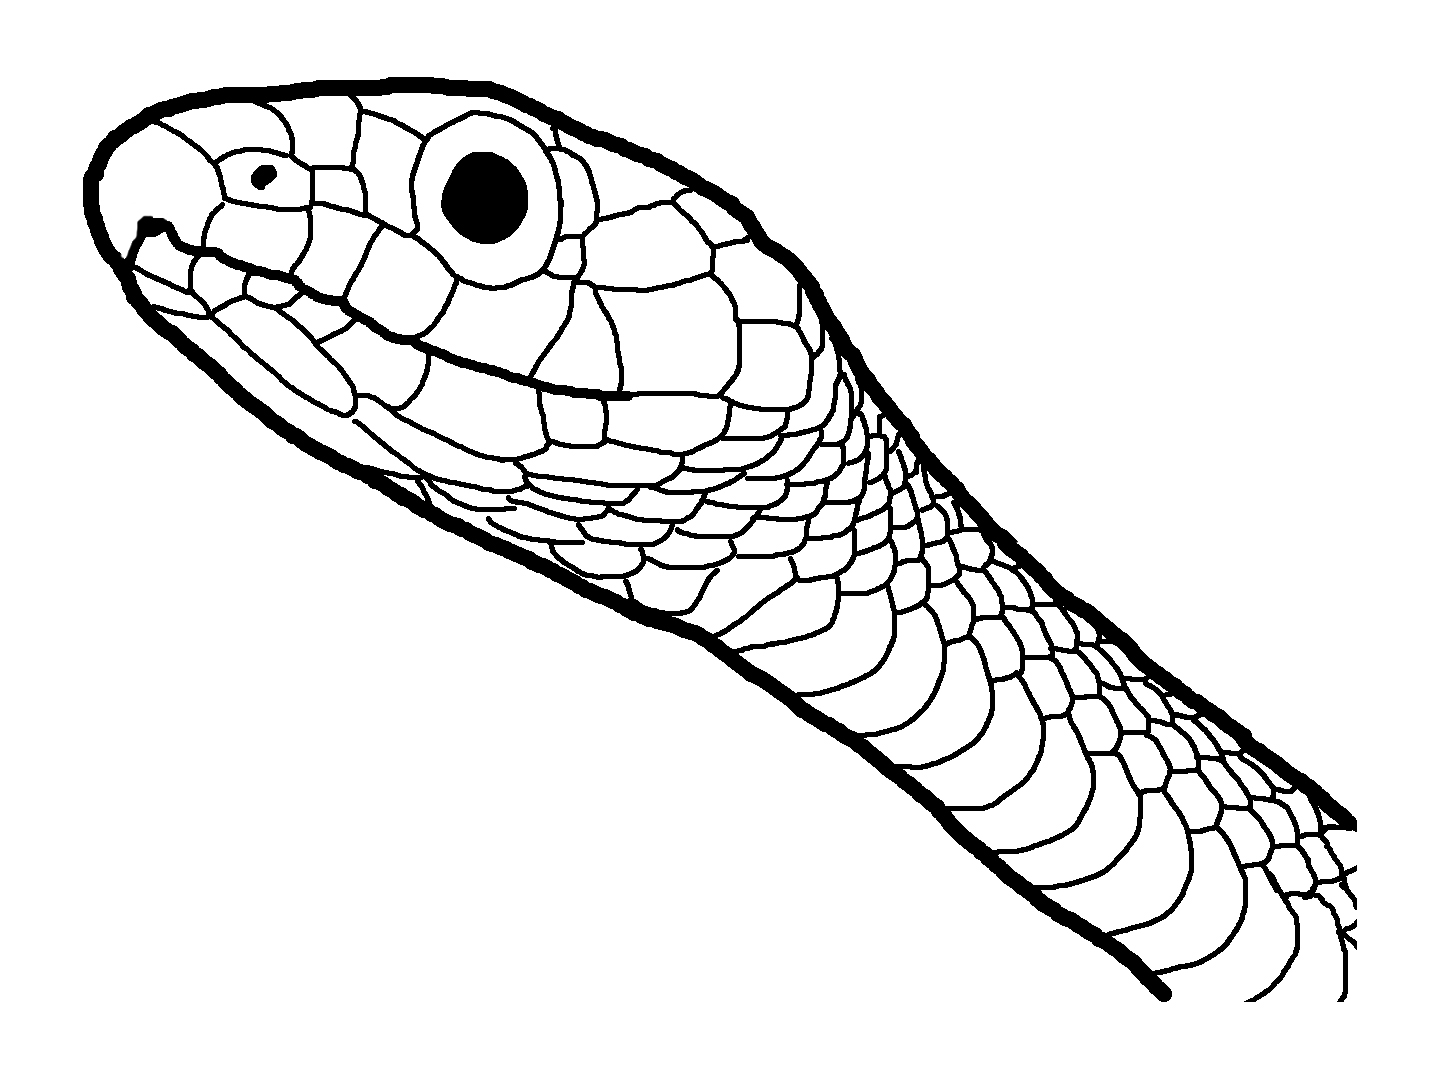 coloring pages cotton mouth snake - photo#33